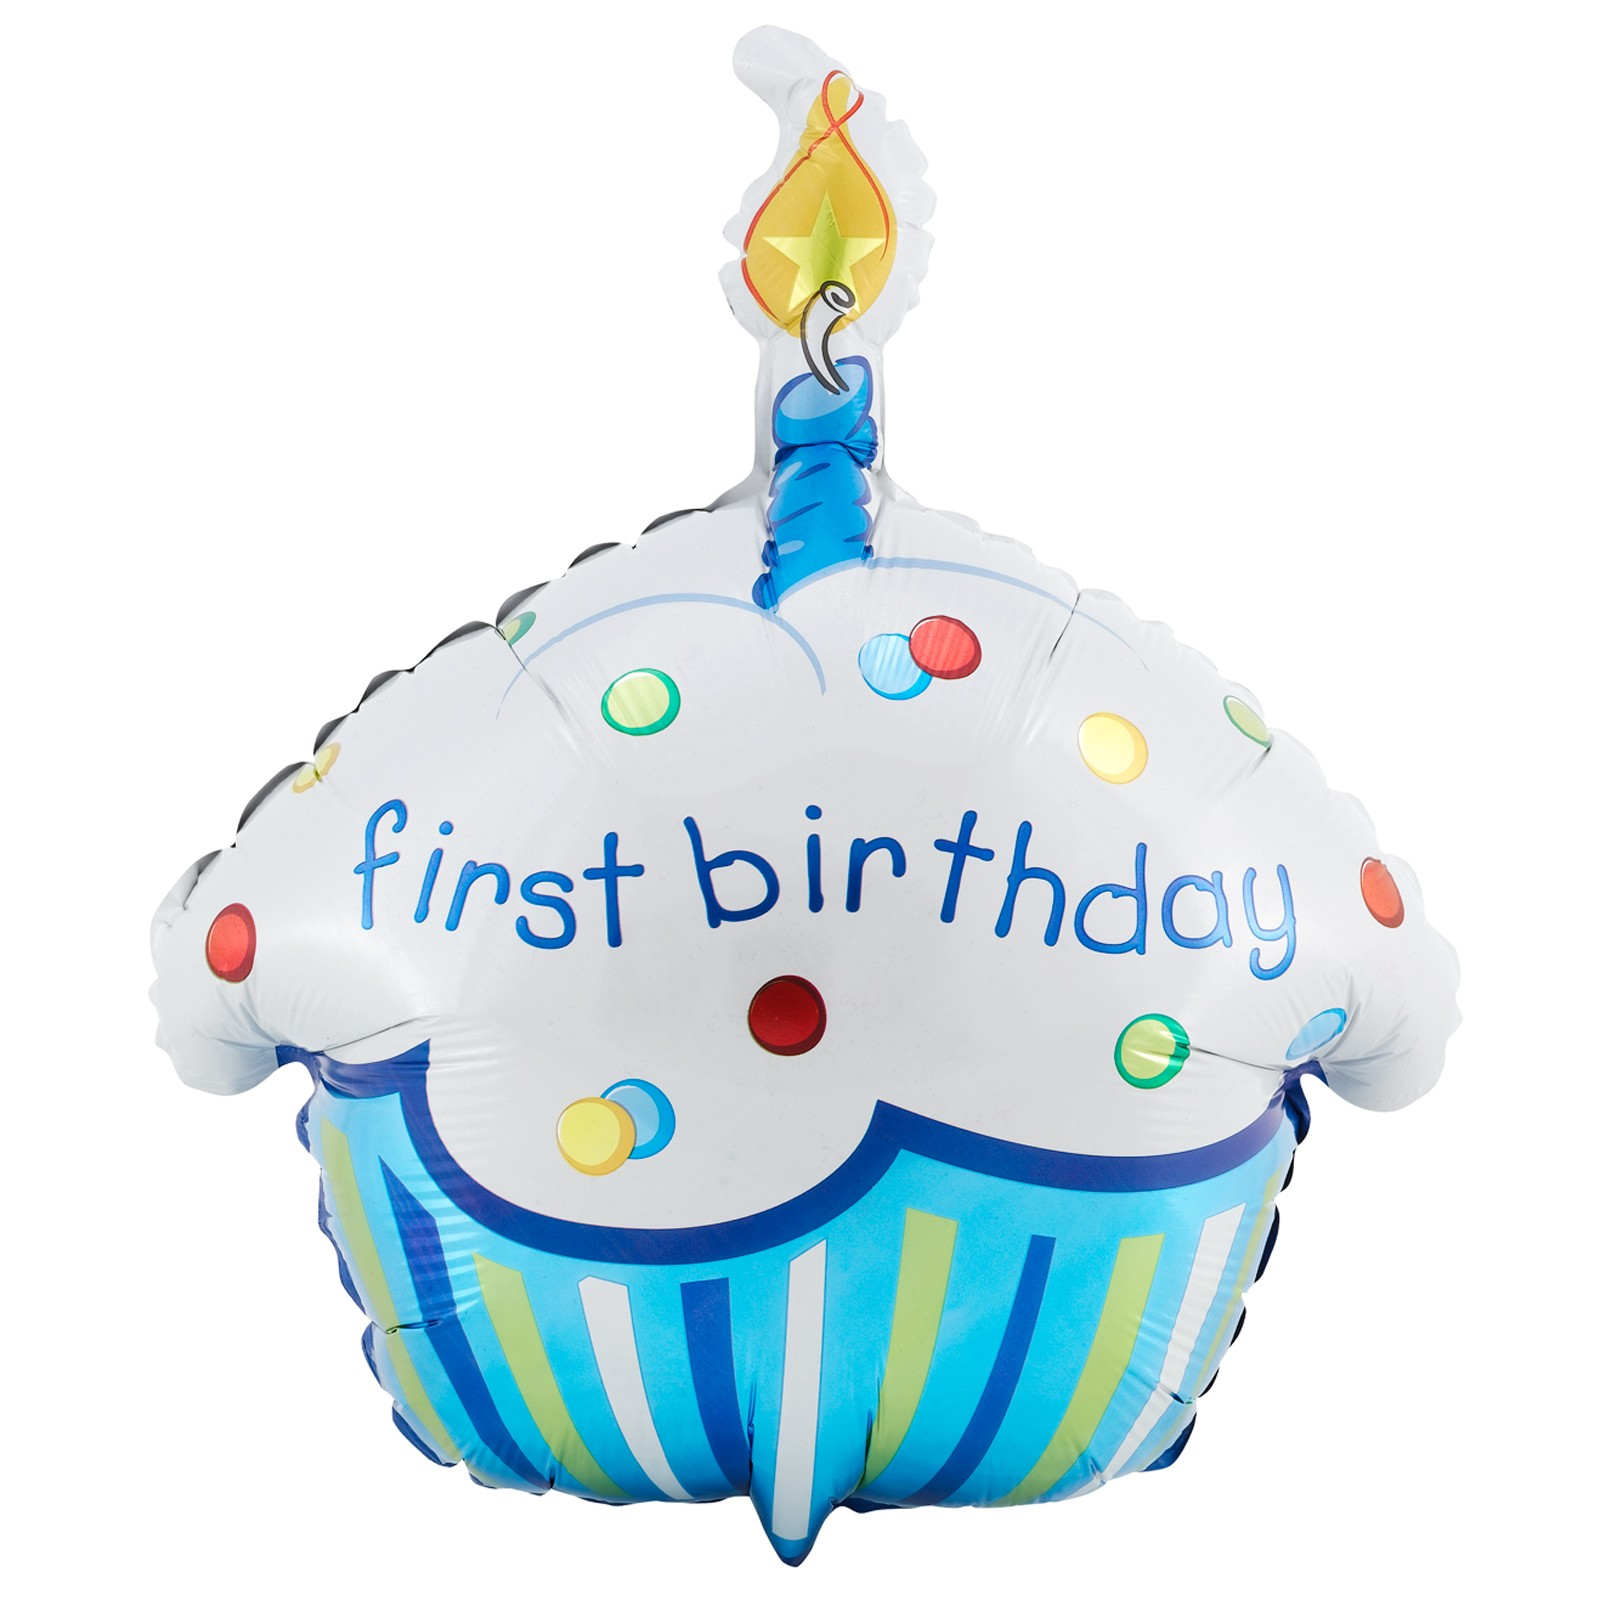 One Year Old Birthday Quotes: Happy 1st Birthday Boy Quotes. QuotesGram